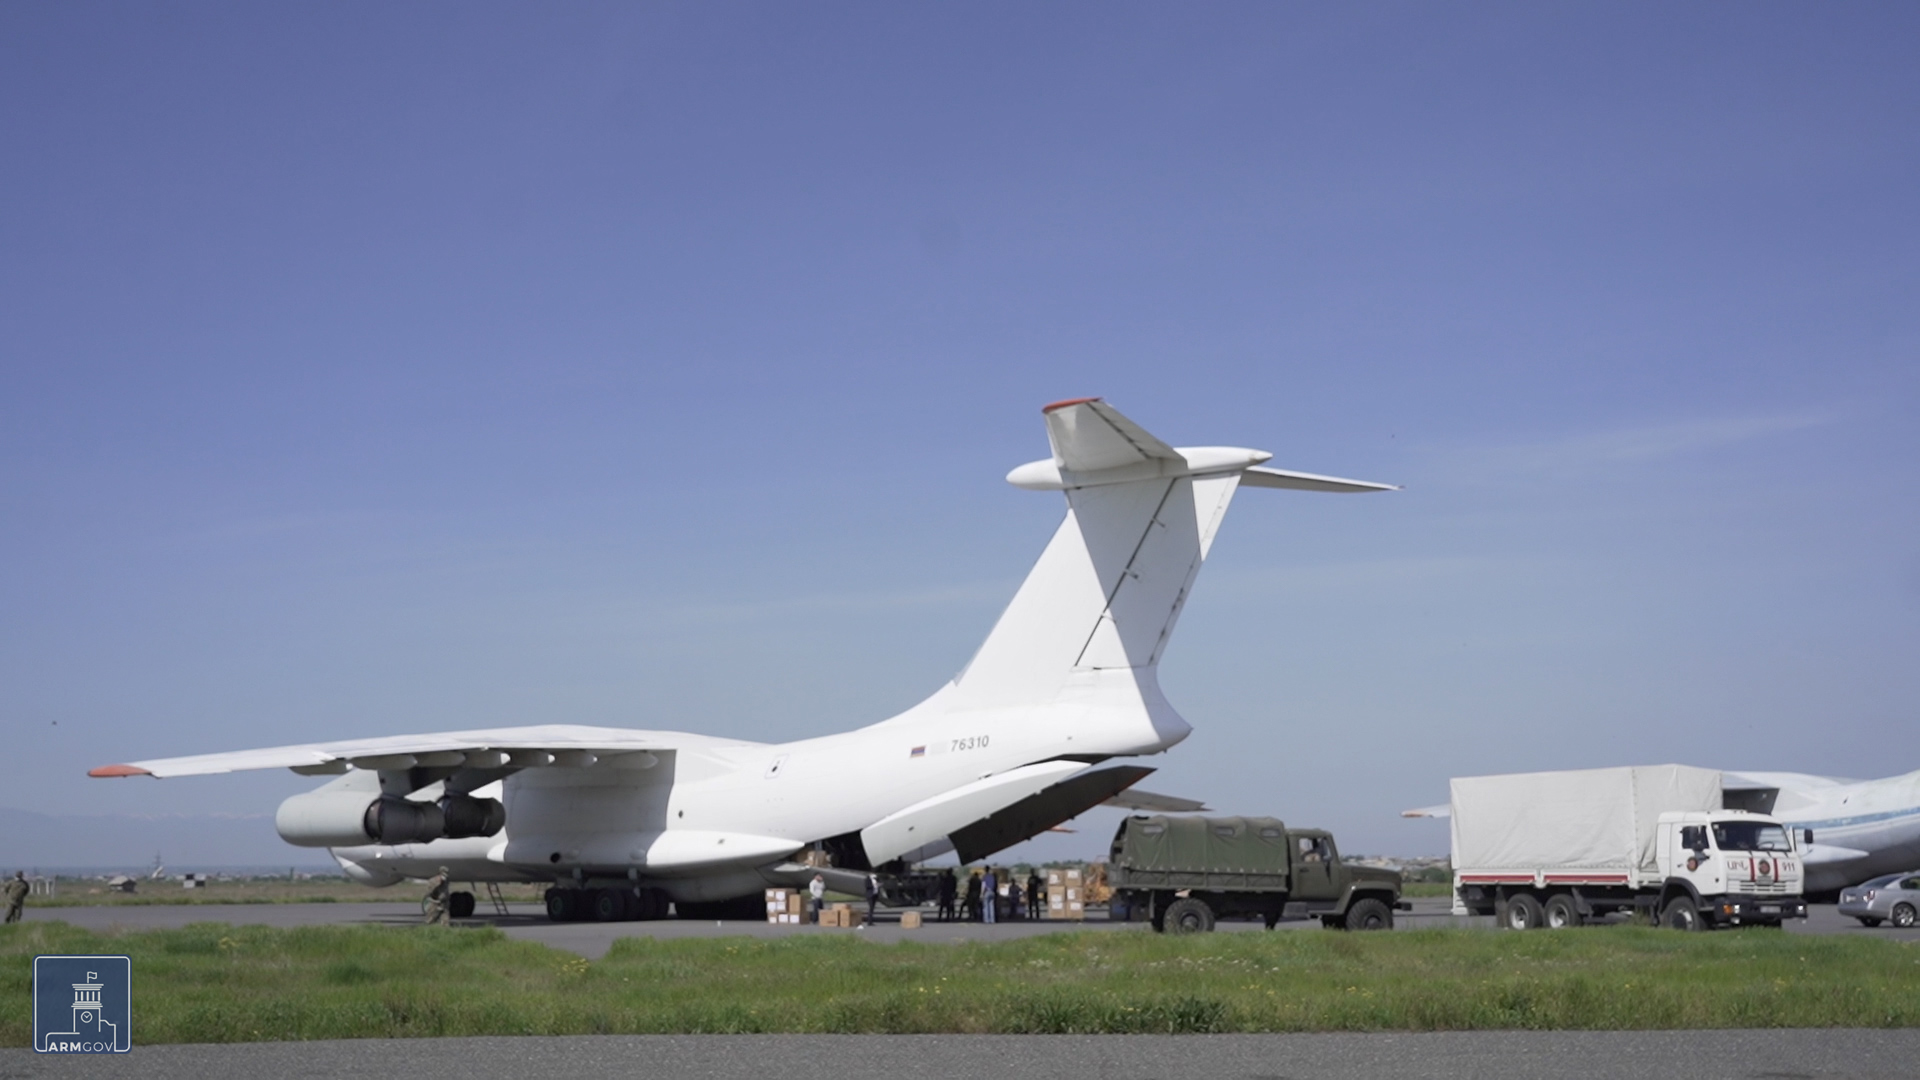 Тhe delivered assistance is unloaded from the plane into the trucks of the Ministry of Emergency Situations.